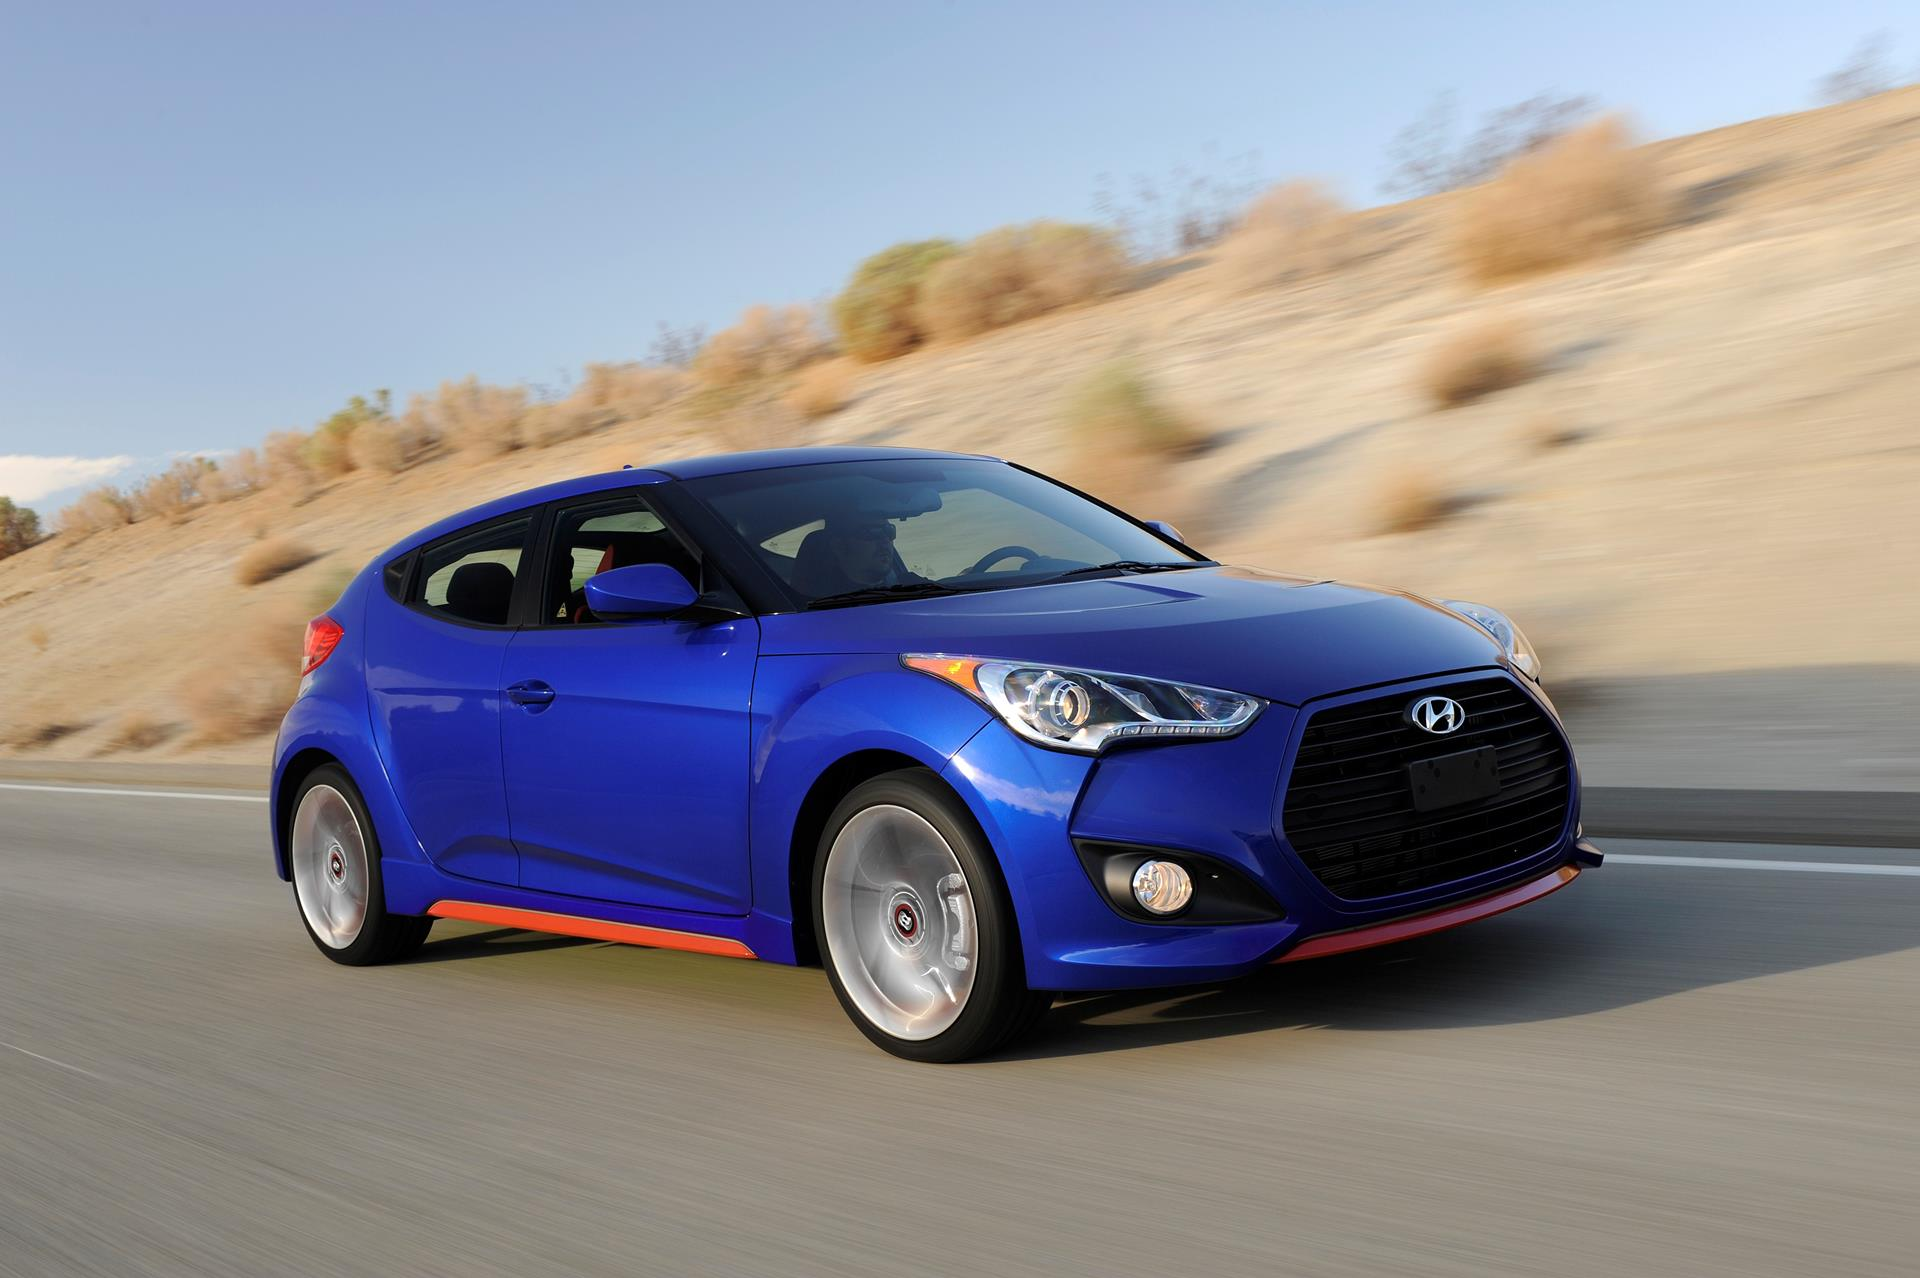 is the flimage rspectampa with hyundai tampa spec fl image rspec great good turbo r veloster